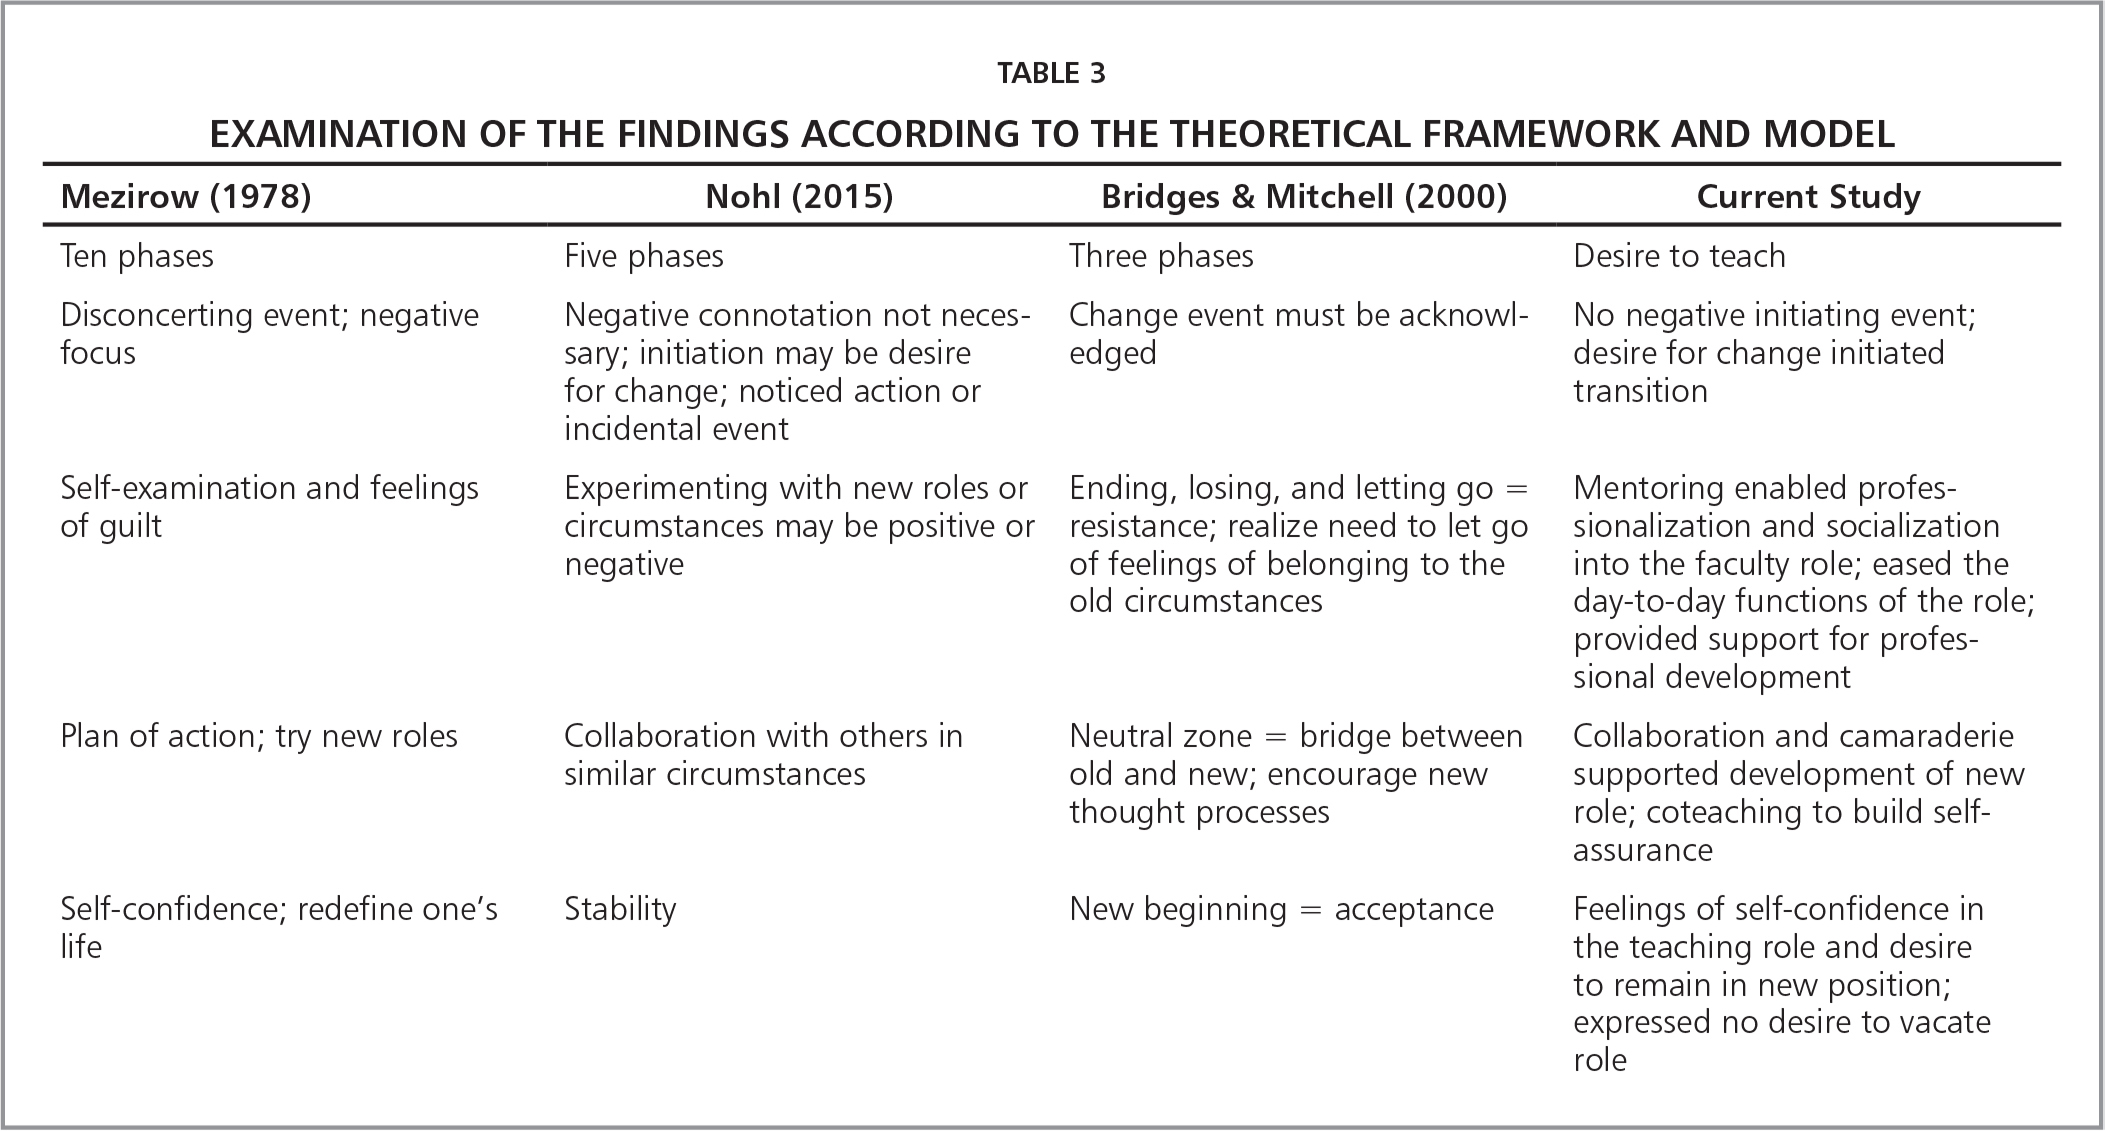 Examination of the Findings According to the Theoretical Framework and Model